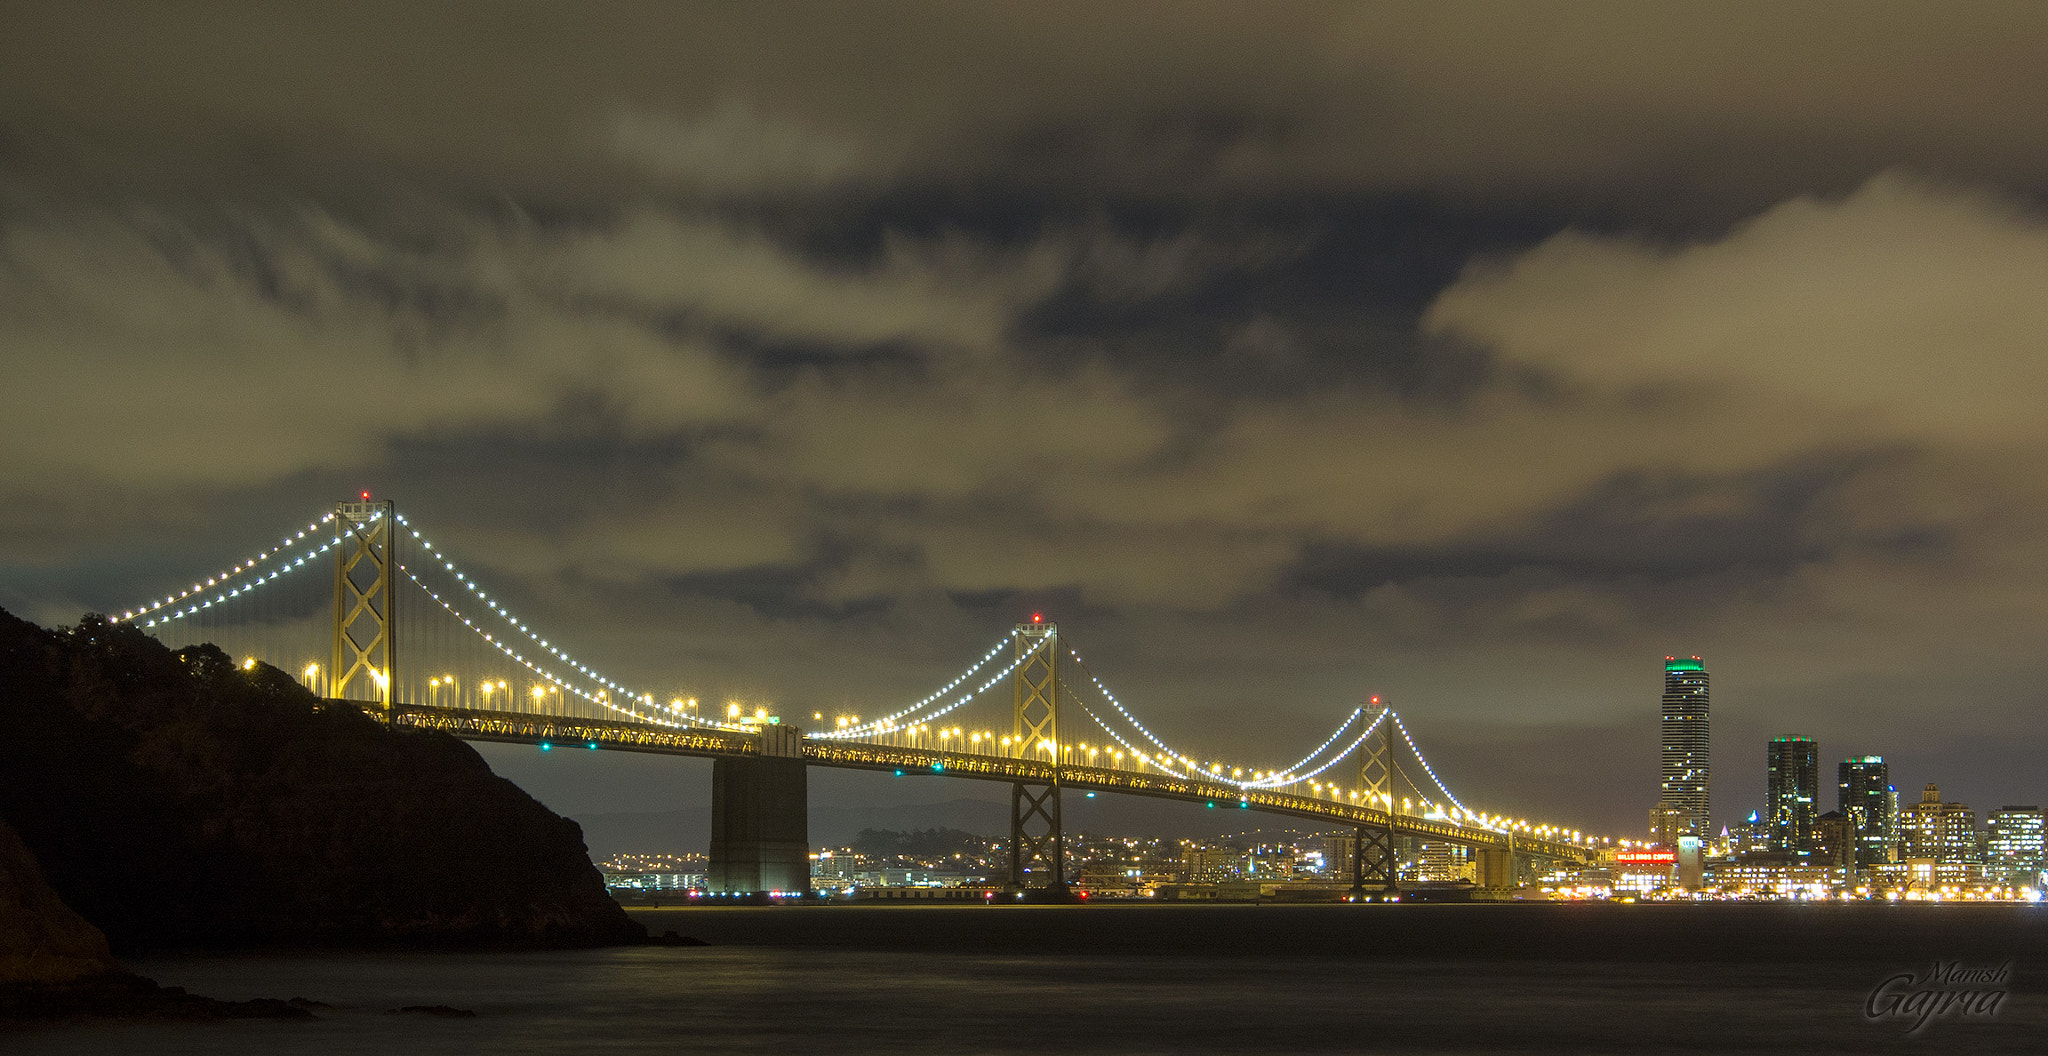 Photograph The Bay Bridge at Night by Manish Gajria on 500px